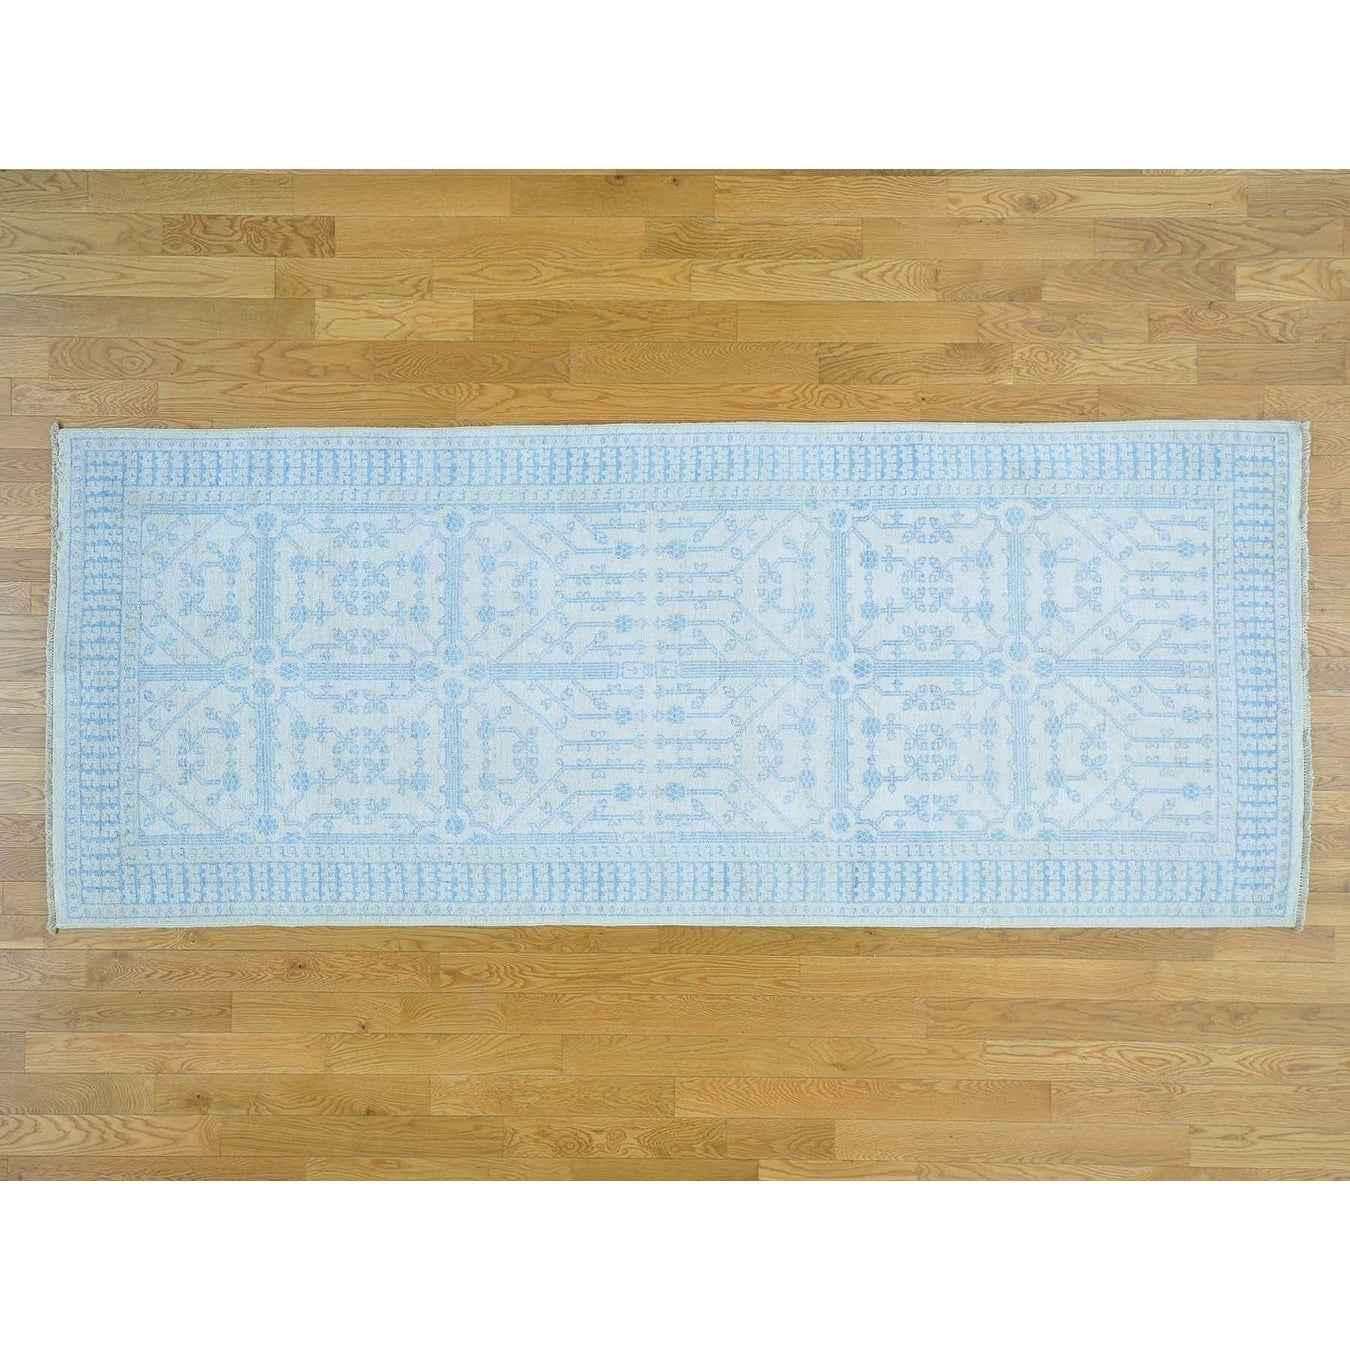 Hand Knotted Ivory Khotan and Samarkand with Wool Oriental Rug - 4'1 x 10'2